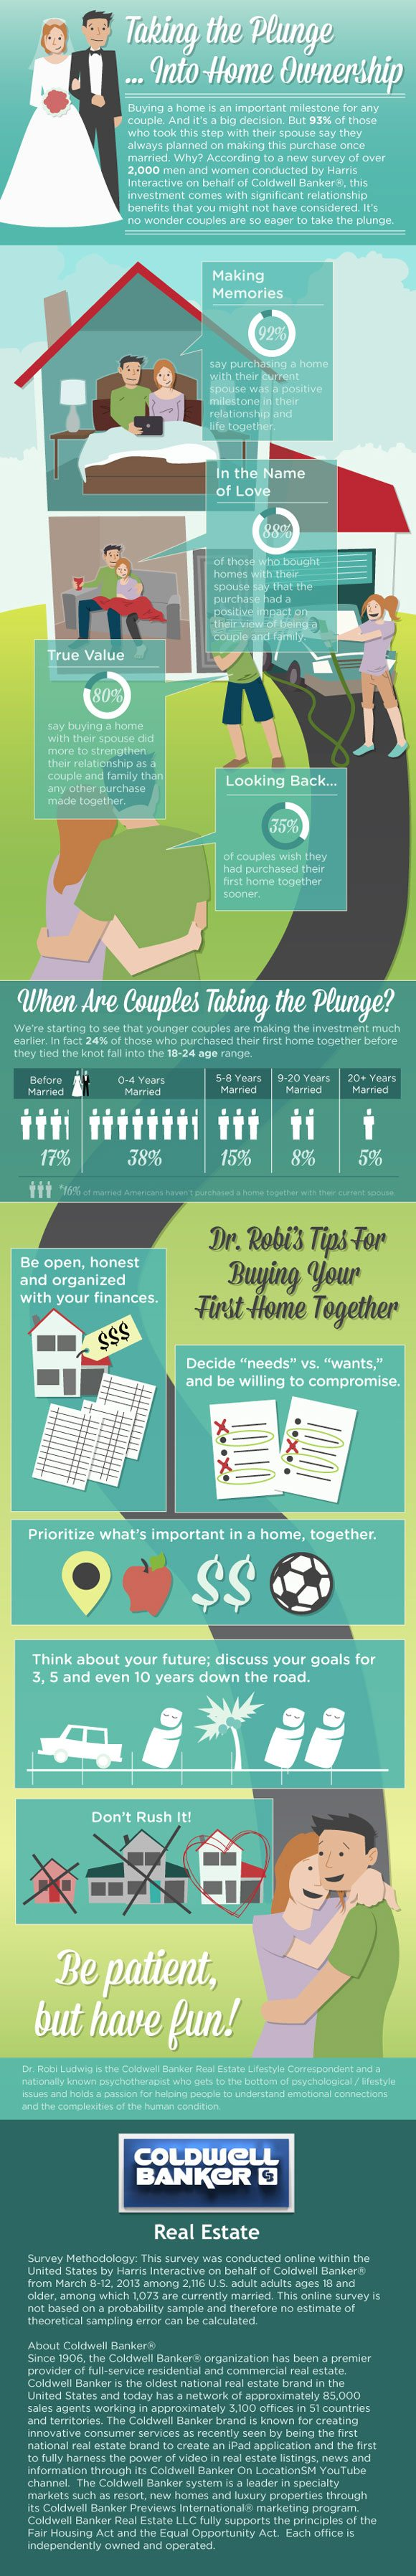 engaged-home-buyers-infographic